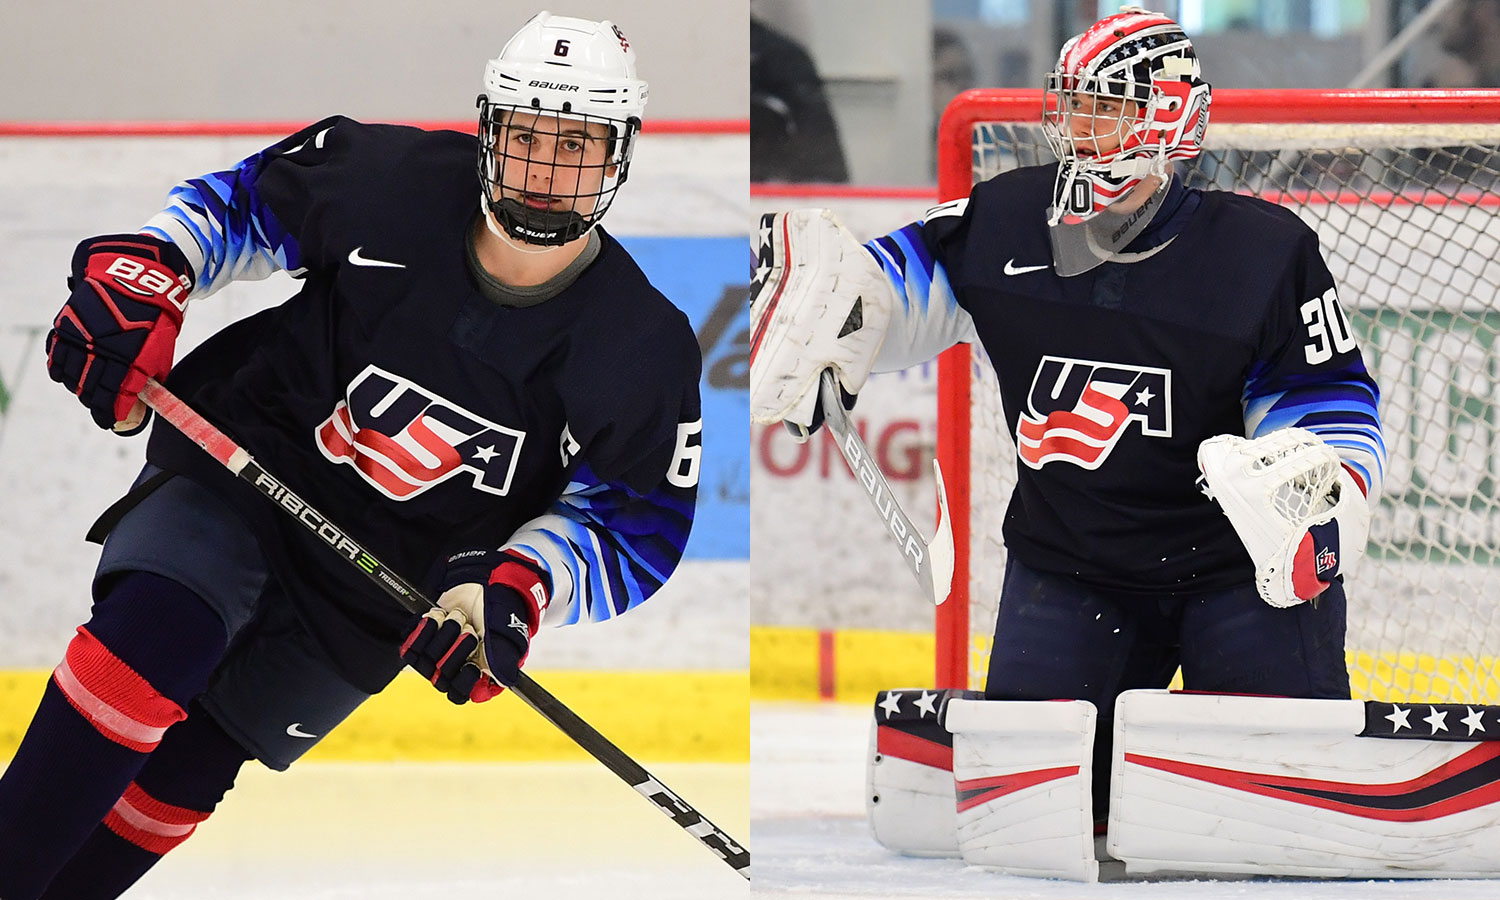 USHL: 25 Players With League Ties Named To U.S. Preliminary Roster For World Junior Championship.